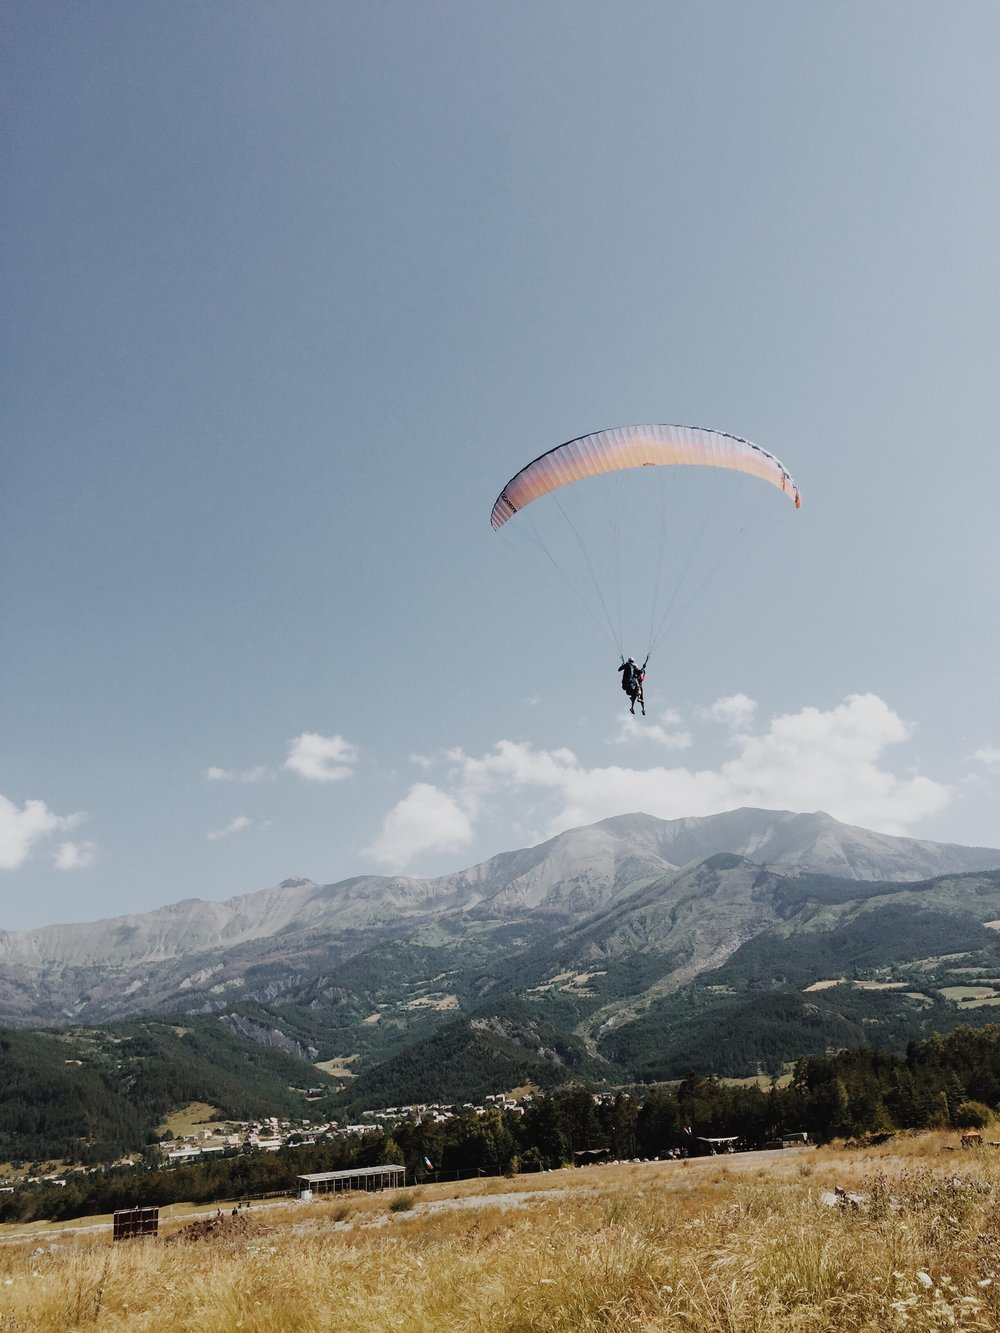 Paragliding in Barcelonnette, a favorite activity of tourists (not me)